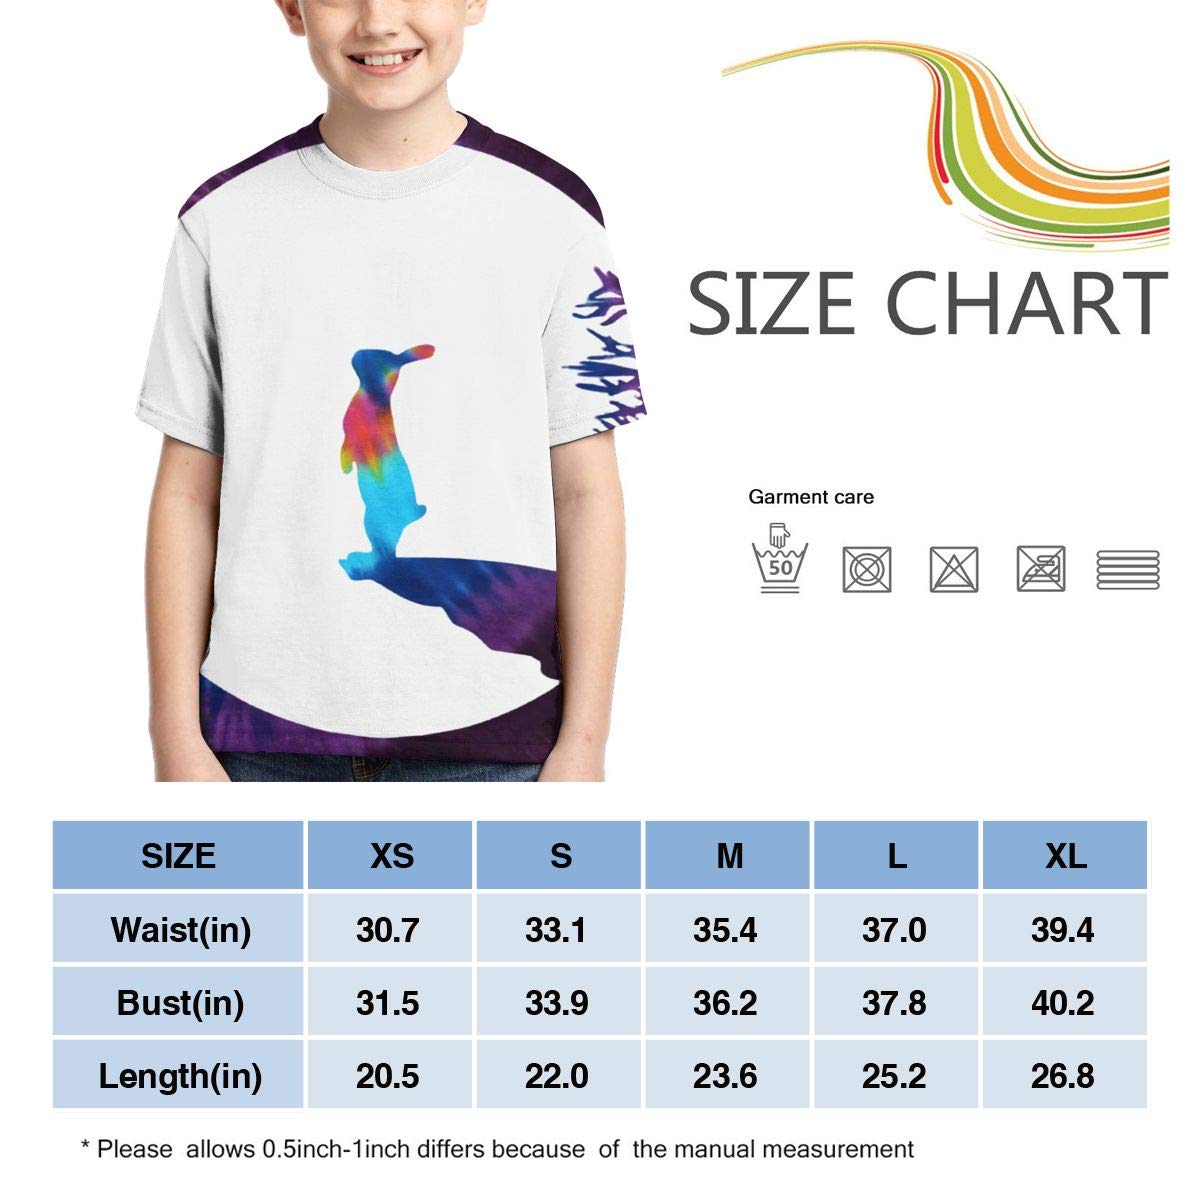 AMODECO Moony Bunny Rabbit 3D Printed Tee T-Shirt for Youth Teenager Boys Girls